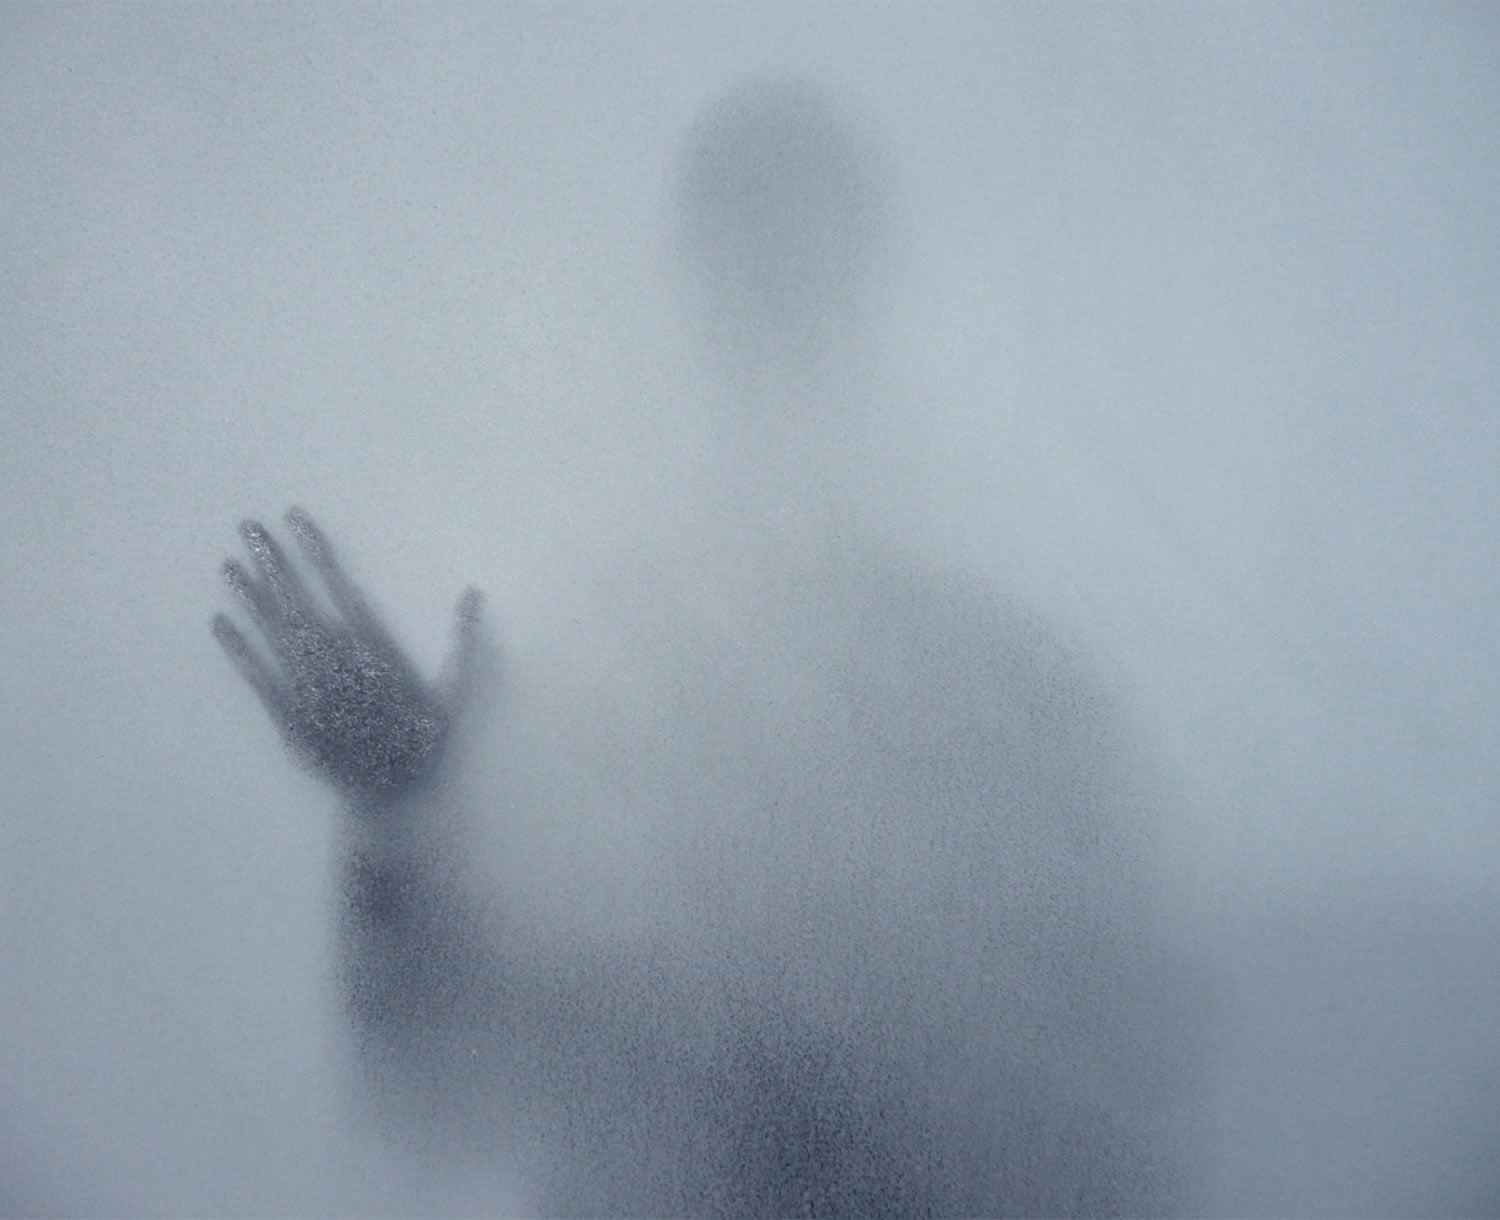 ghost like person with hand on a smokey window. drawing by hernan marin